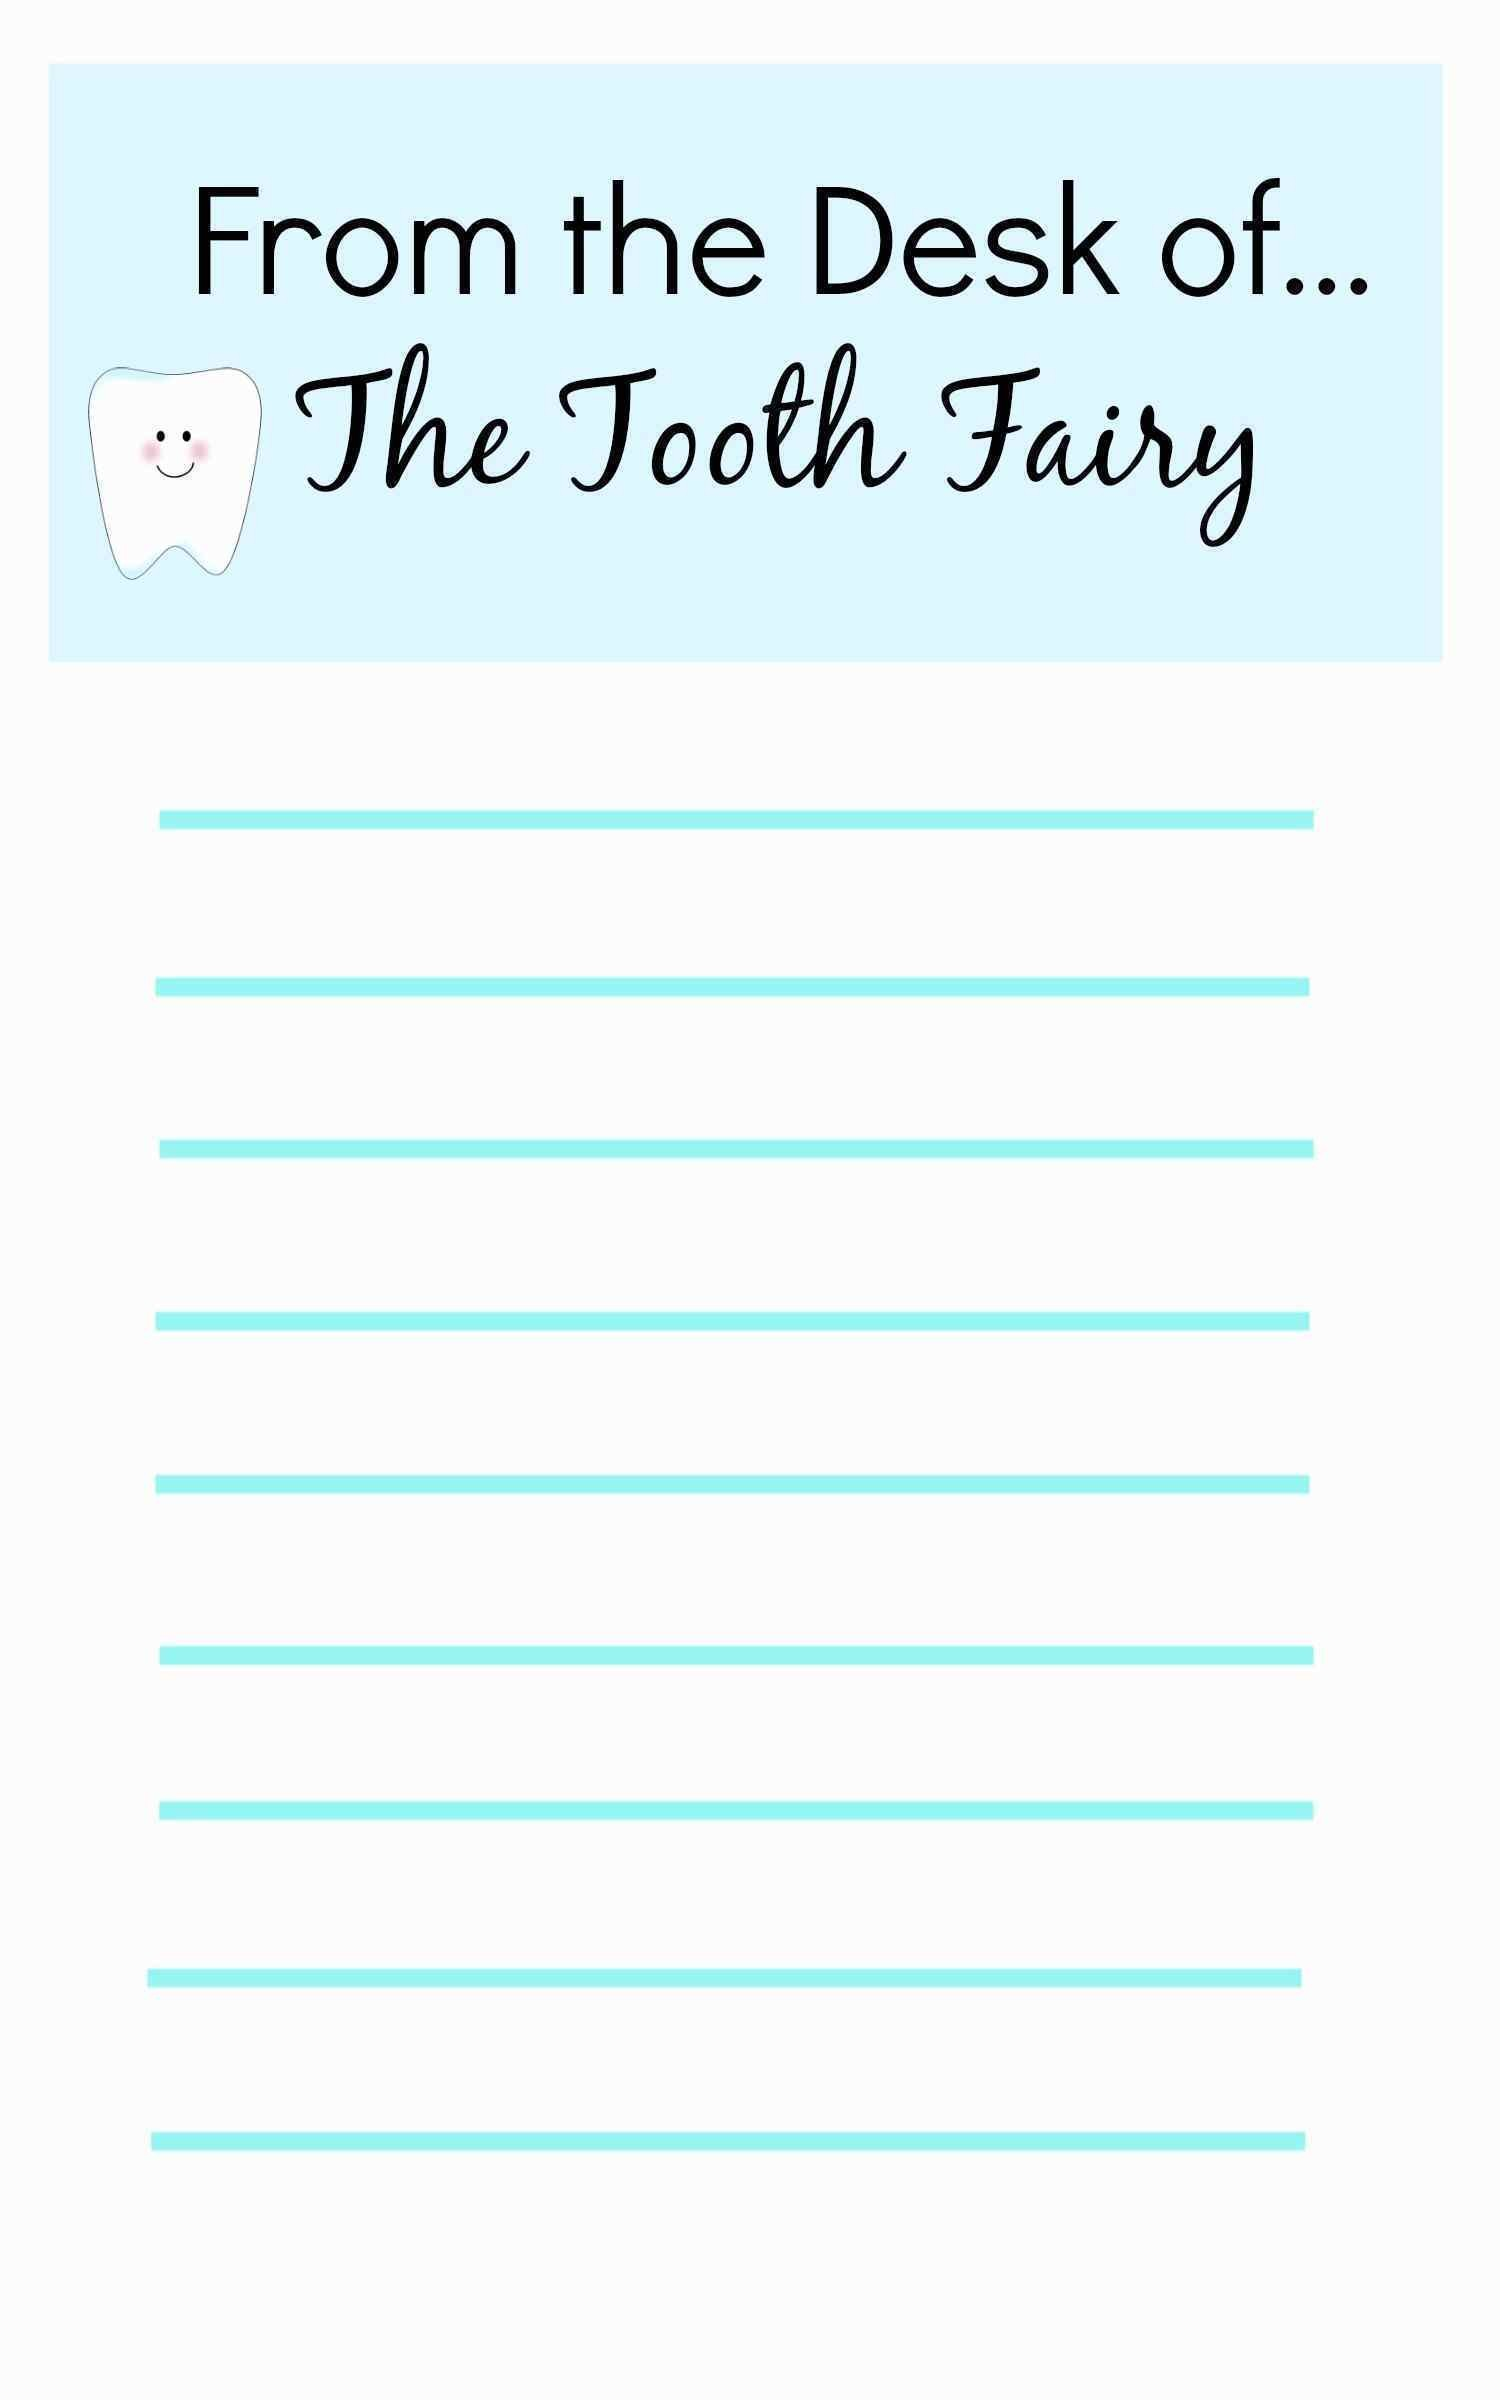 It is a photo of Critical Tooth Fairy Stationary